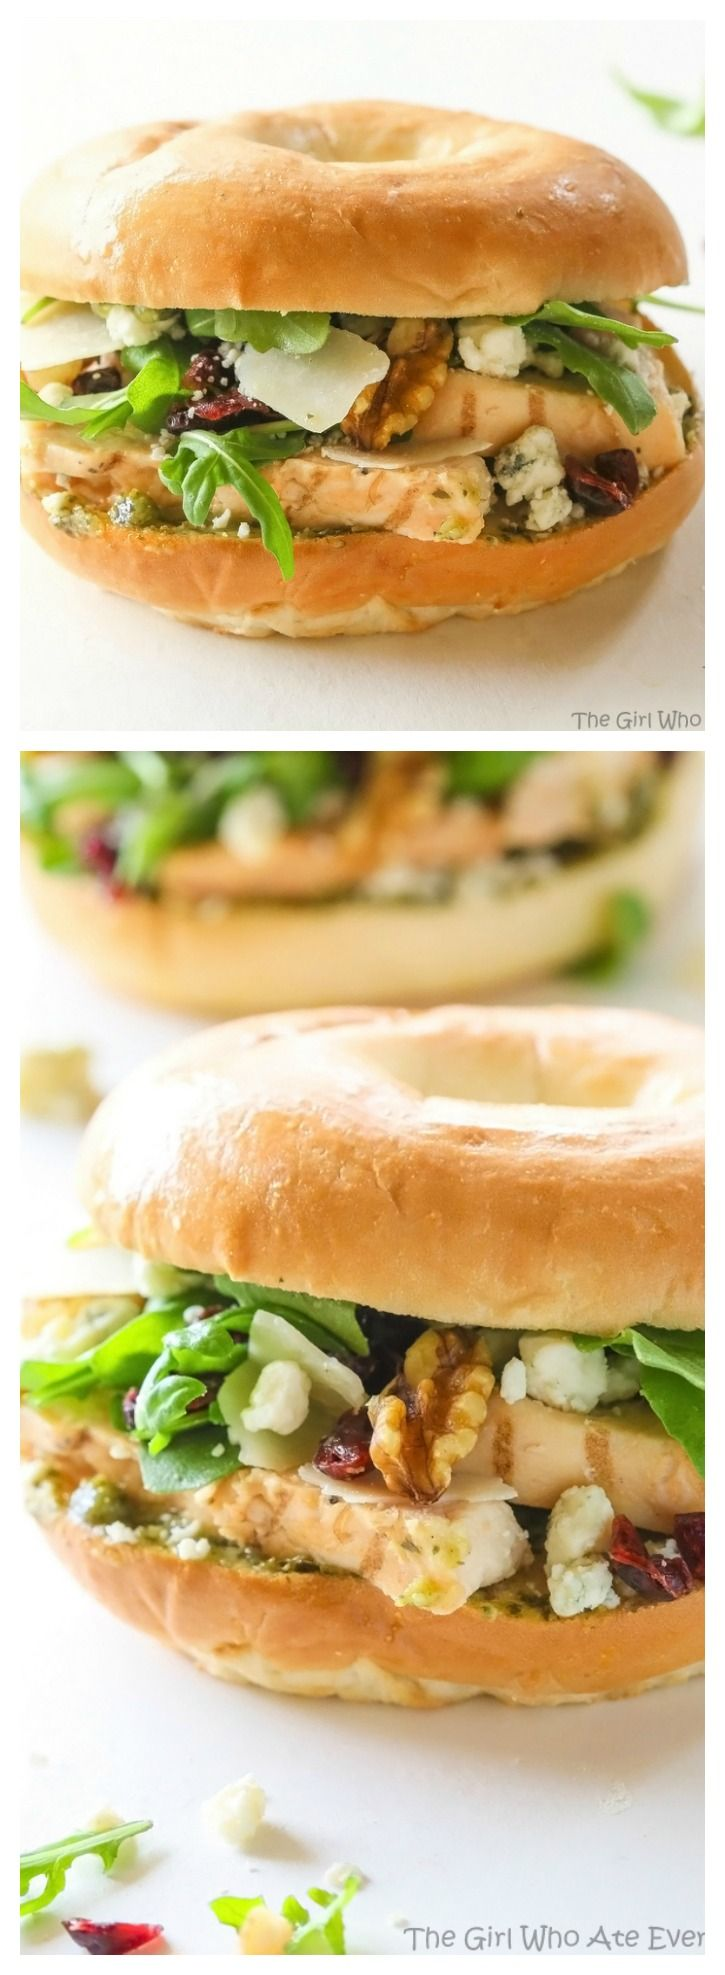 This Hampton Sandwich is one of those fancy salads on a sandwich! Grilled chicken, arugula, Gorgonzola, craisins, pesto, and walnuts. https://the-girl-who-ate-everything.com @Thomas Breads